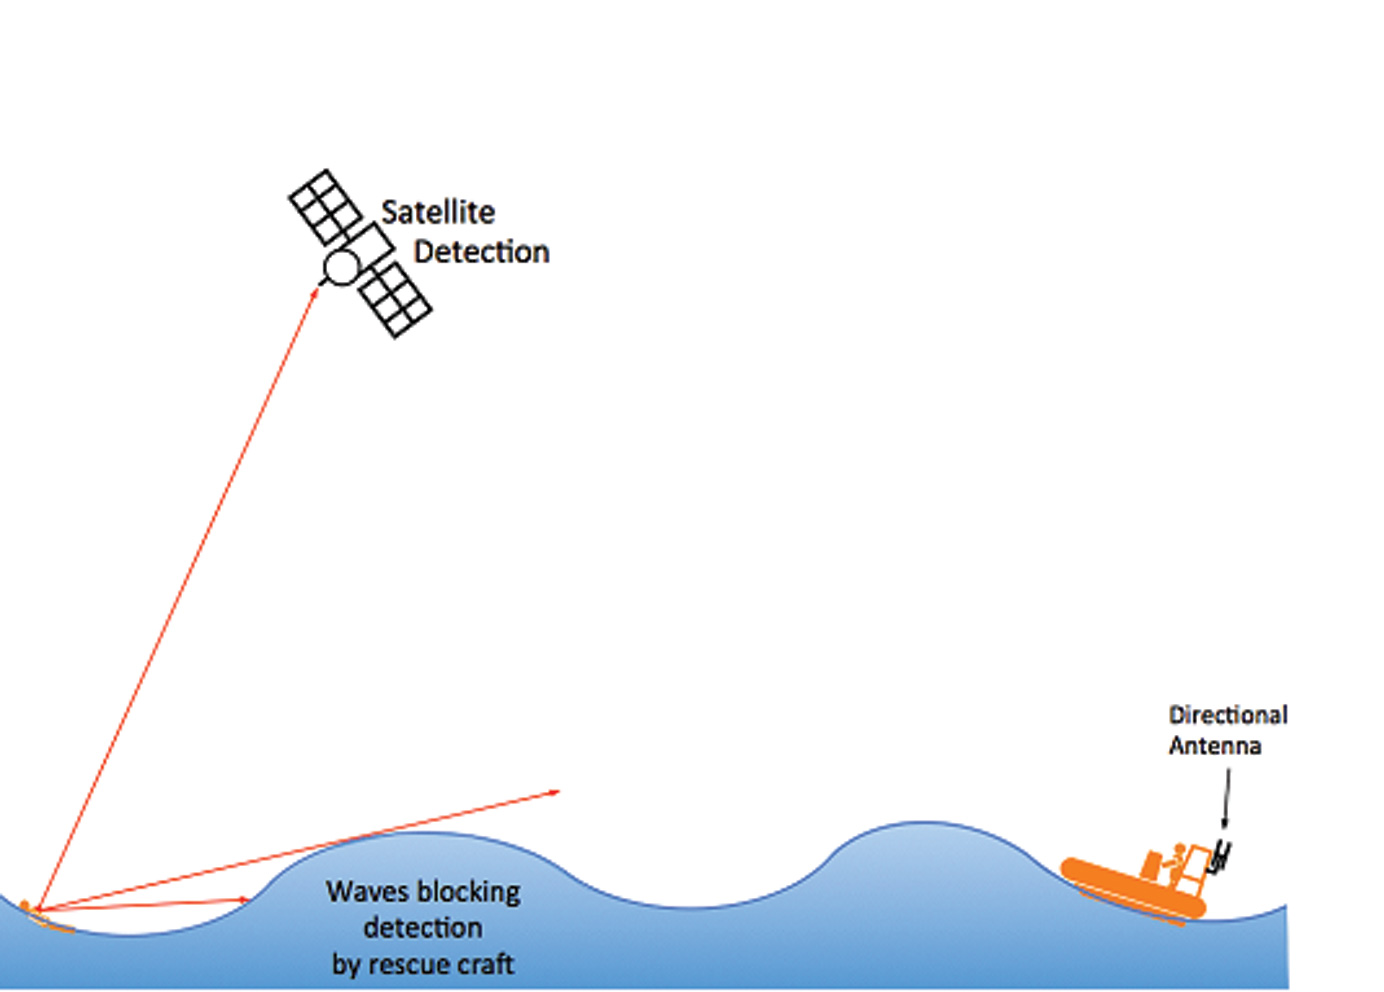 Figure 1 – Illustration of beacon transmission and how ocean waves may impede detection performance.